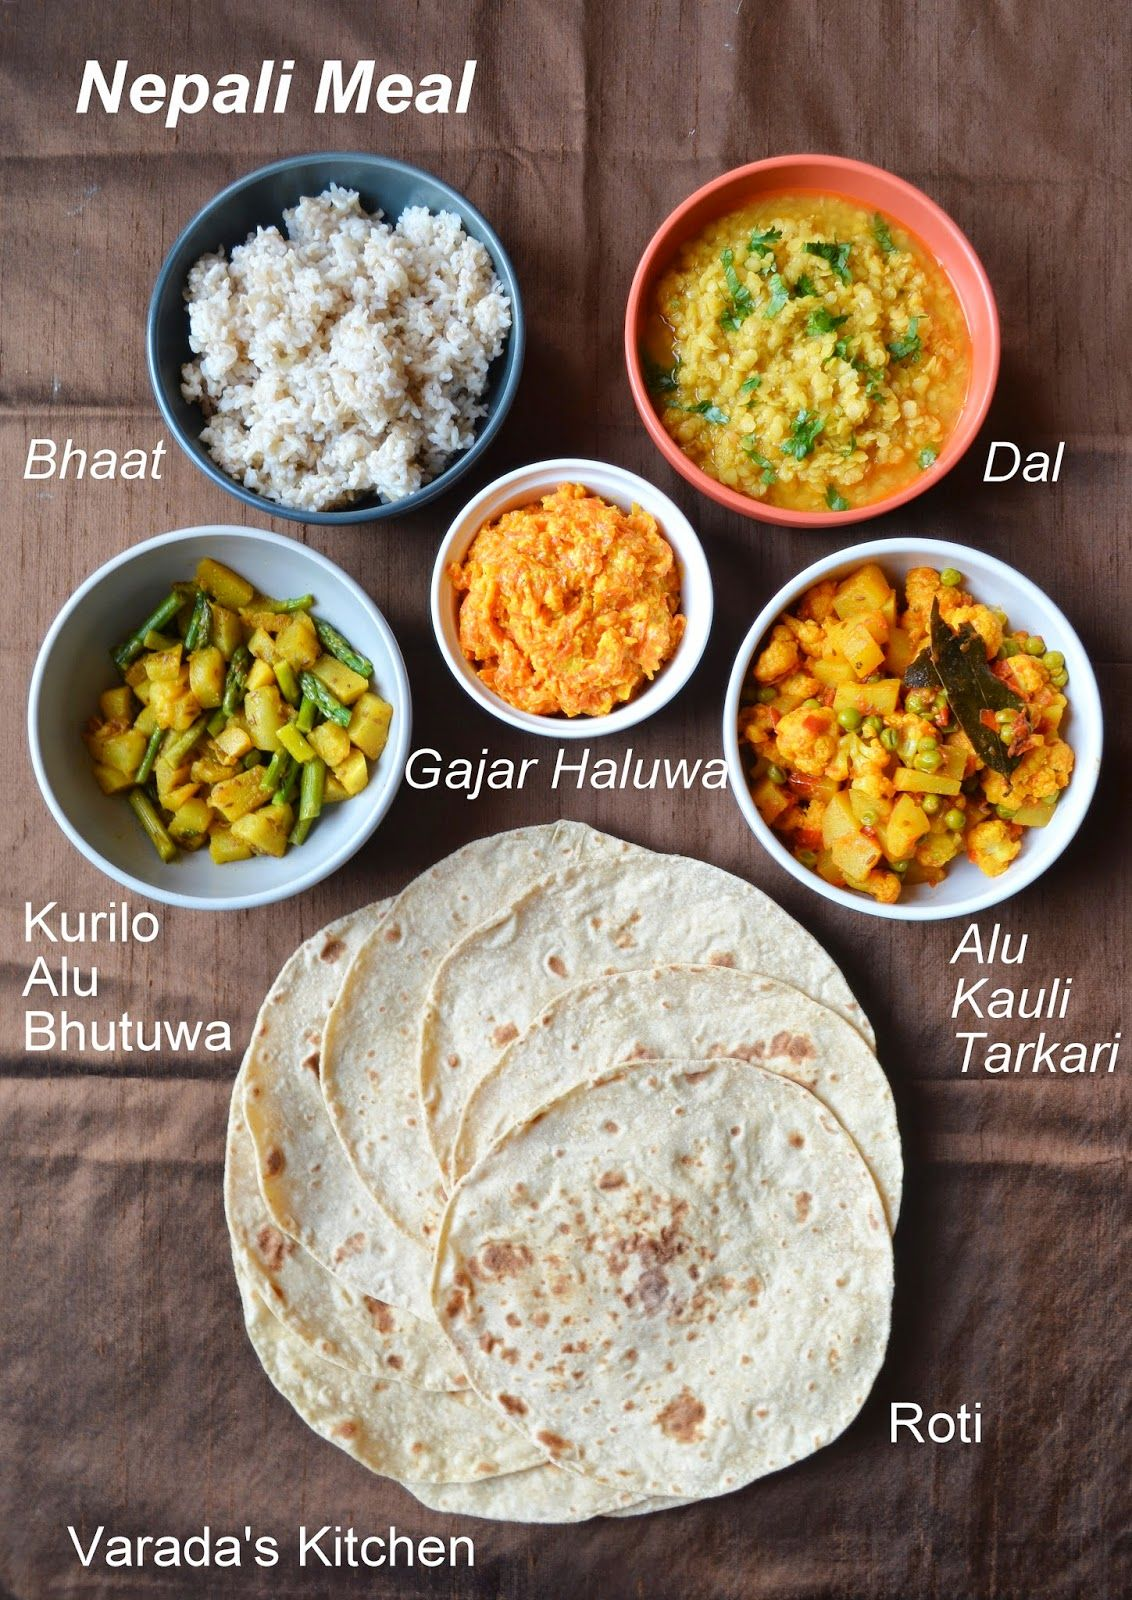 south n thali typical food eaten for lunch or dinner in 26 meals from around the world that is the goal i set myself this summer today i present all the meals in one post my country of origin i